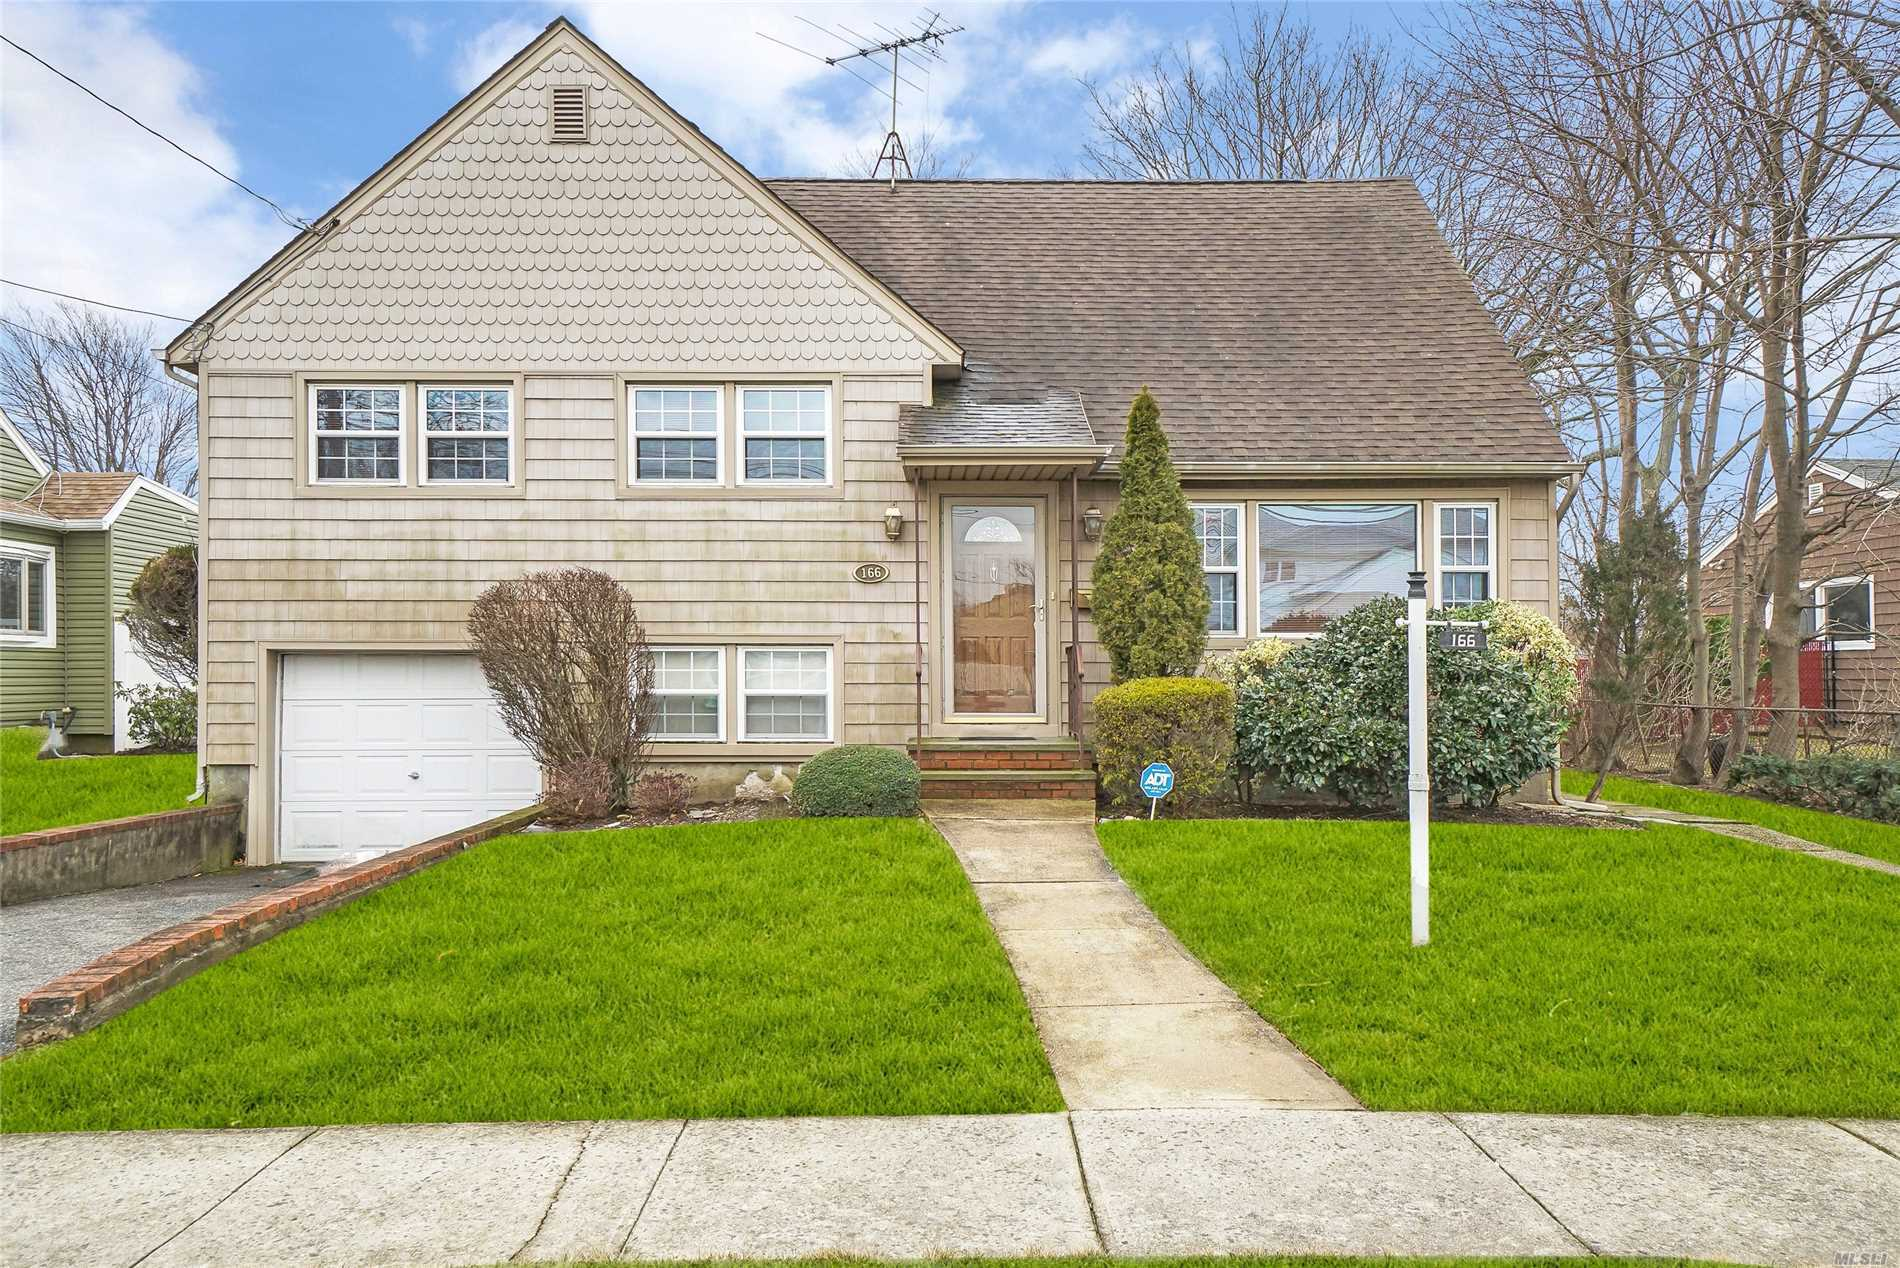 Make This Your Dream Home! Lovely Split Located On A Unique Large Property. Features 3 Bdrms, Full Bath, Lr, Fdr, Sunroom, Hardwood Floors, One Car Garage And Pvt. Driveway. Plenty Of Storage! Convenient To Lirr, Local Transportation And Beaches! Loads Of Potential!